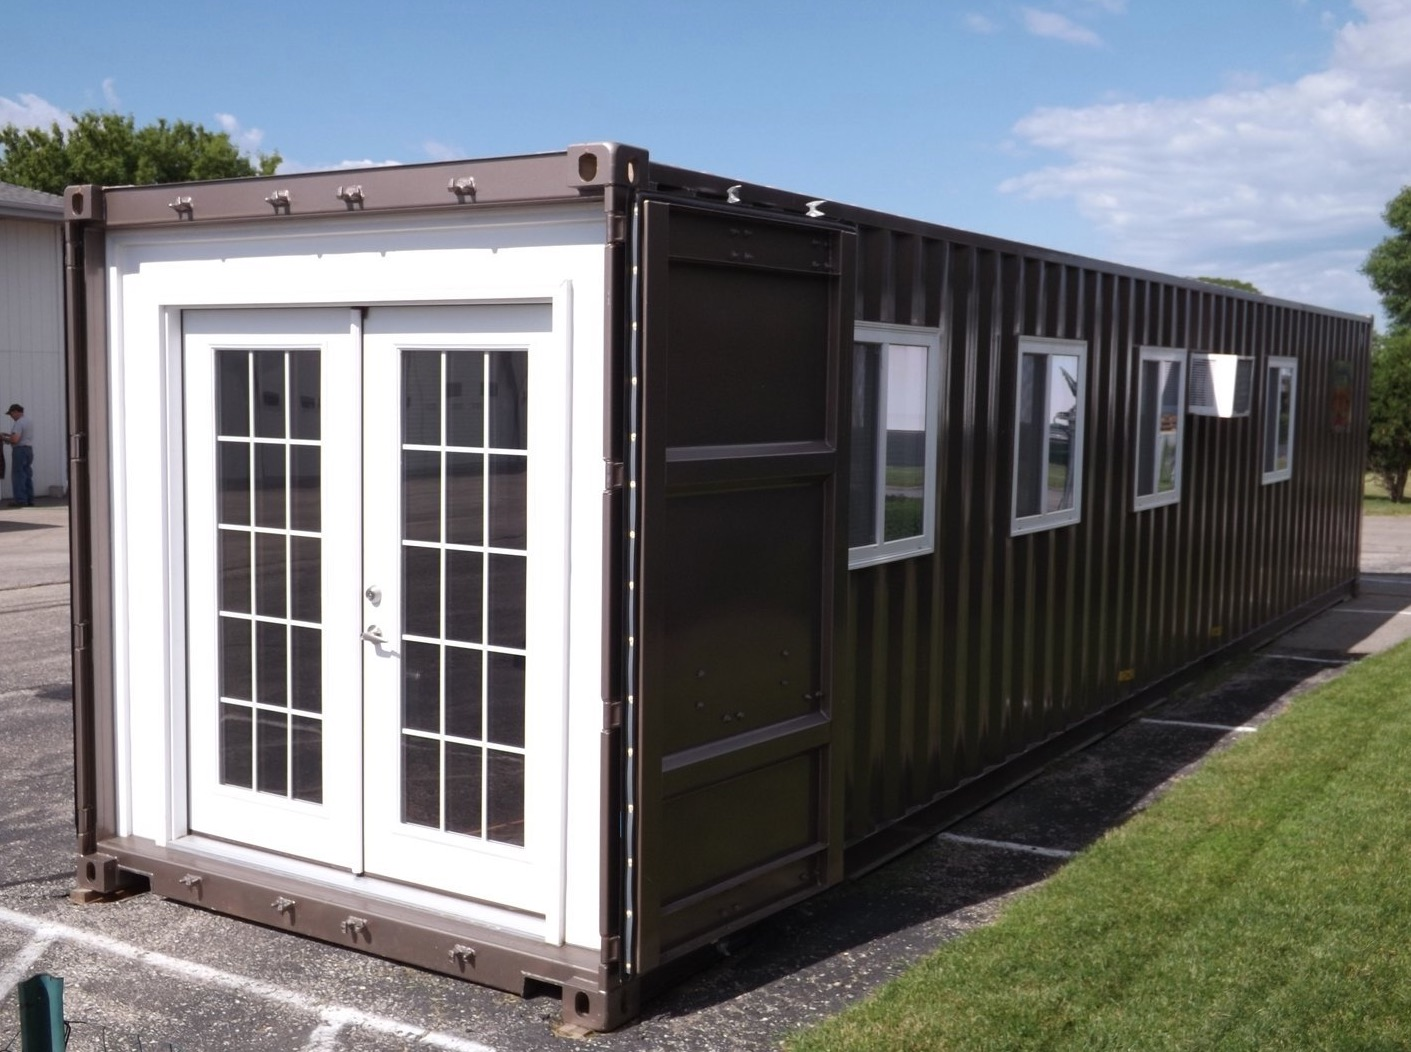 Prefab Shipping Container Tiny Home On Amazon